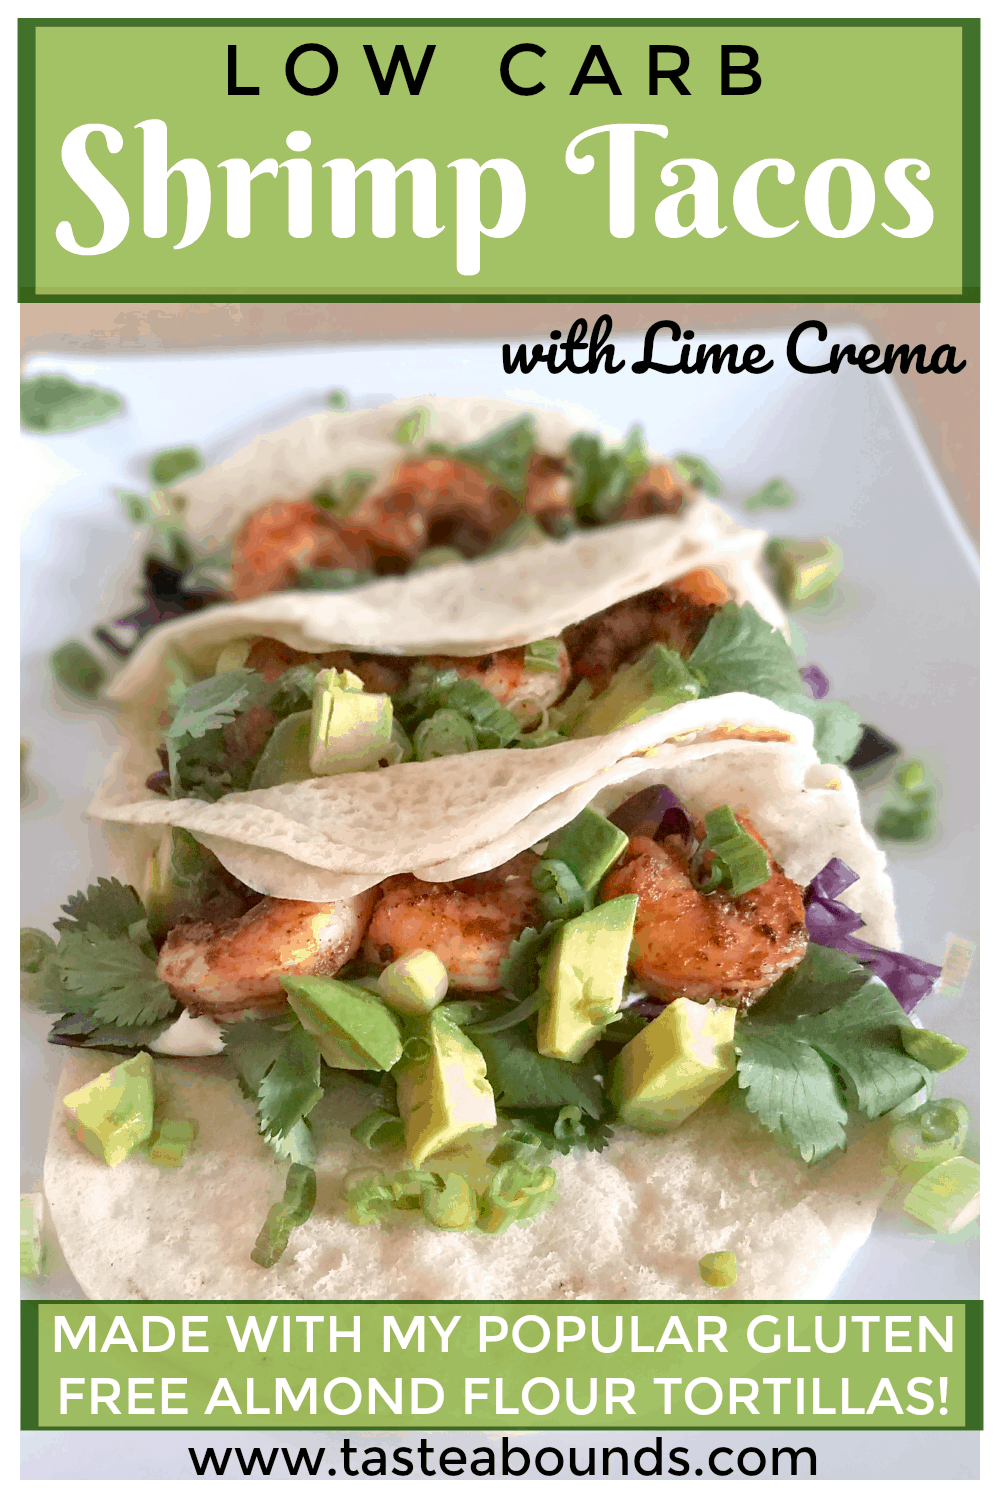 These Low Carb Shrimp Tacos with Lime Crema are full of flavor yet quick and easy to make! Simple, nutritious ingredients like avocado and cilantro provide lots of health benefits and it all stays wrapped up thanks to my gluten-free almond flour tortillas that won\'t fall apart.